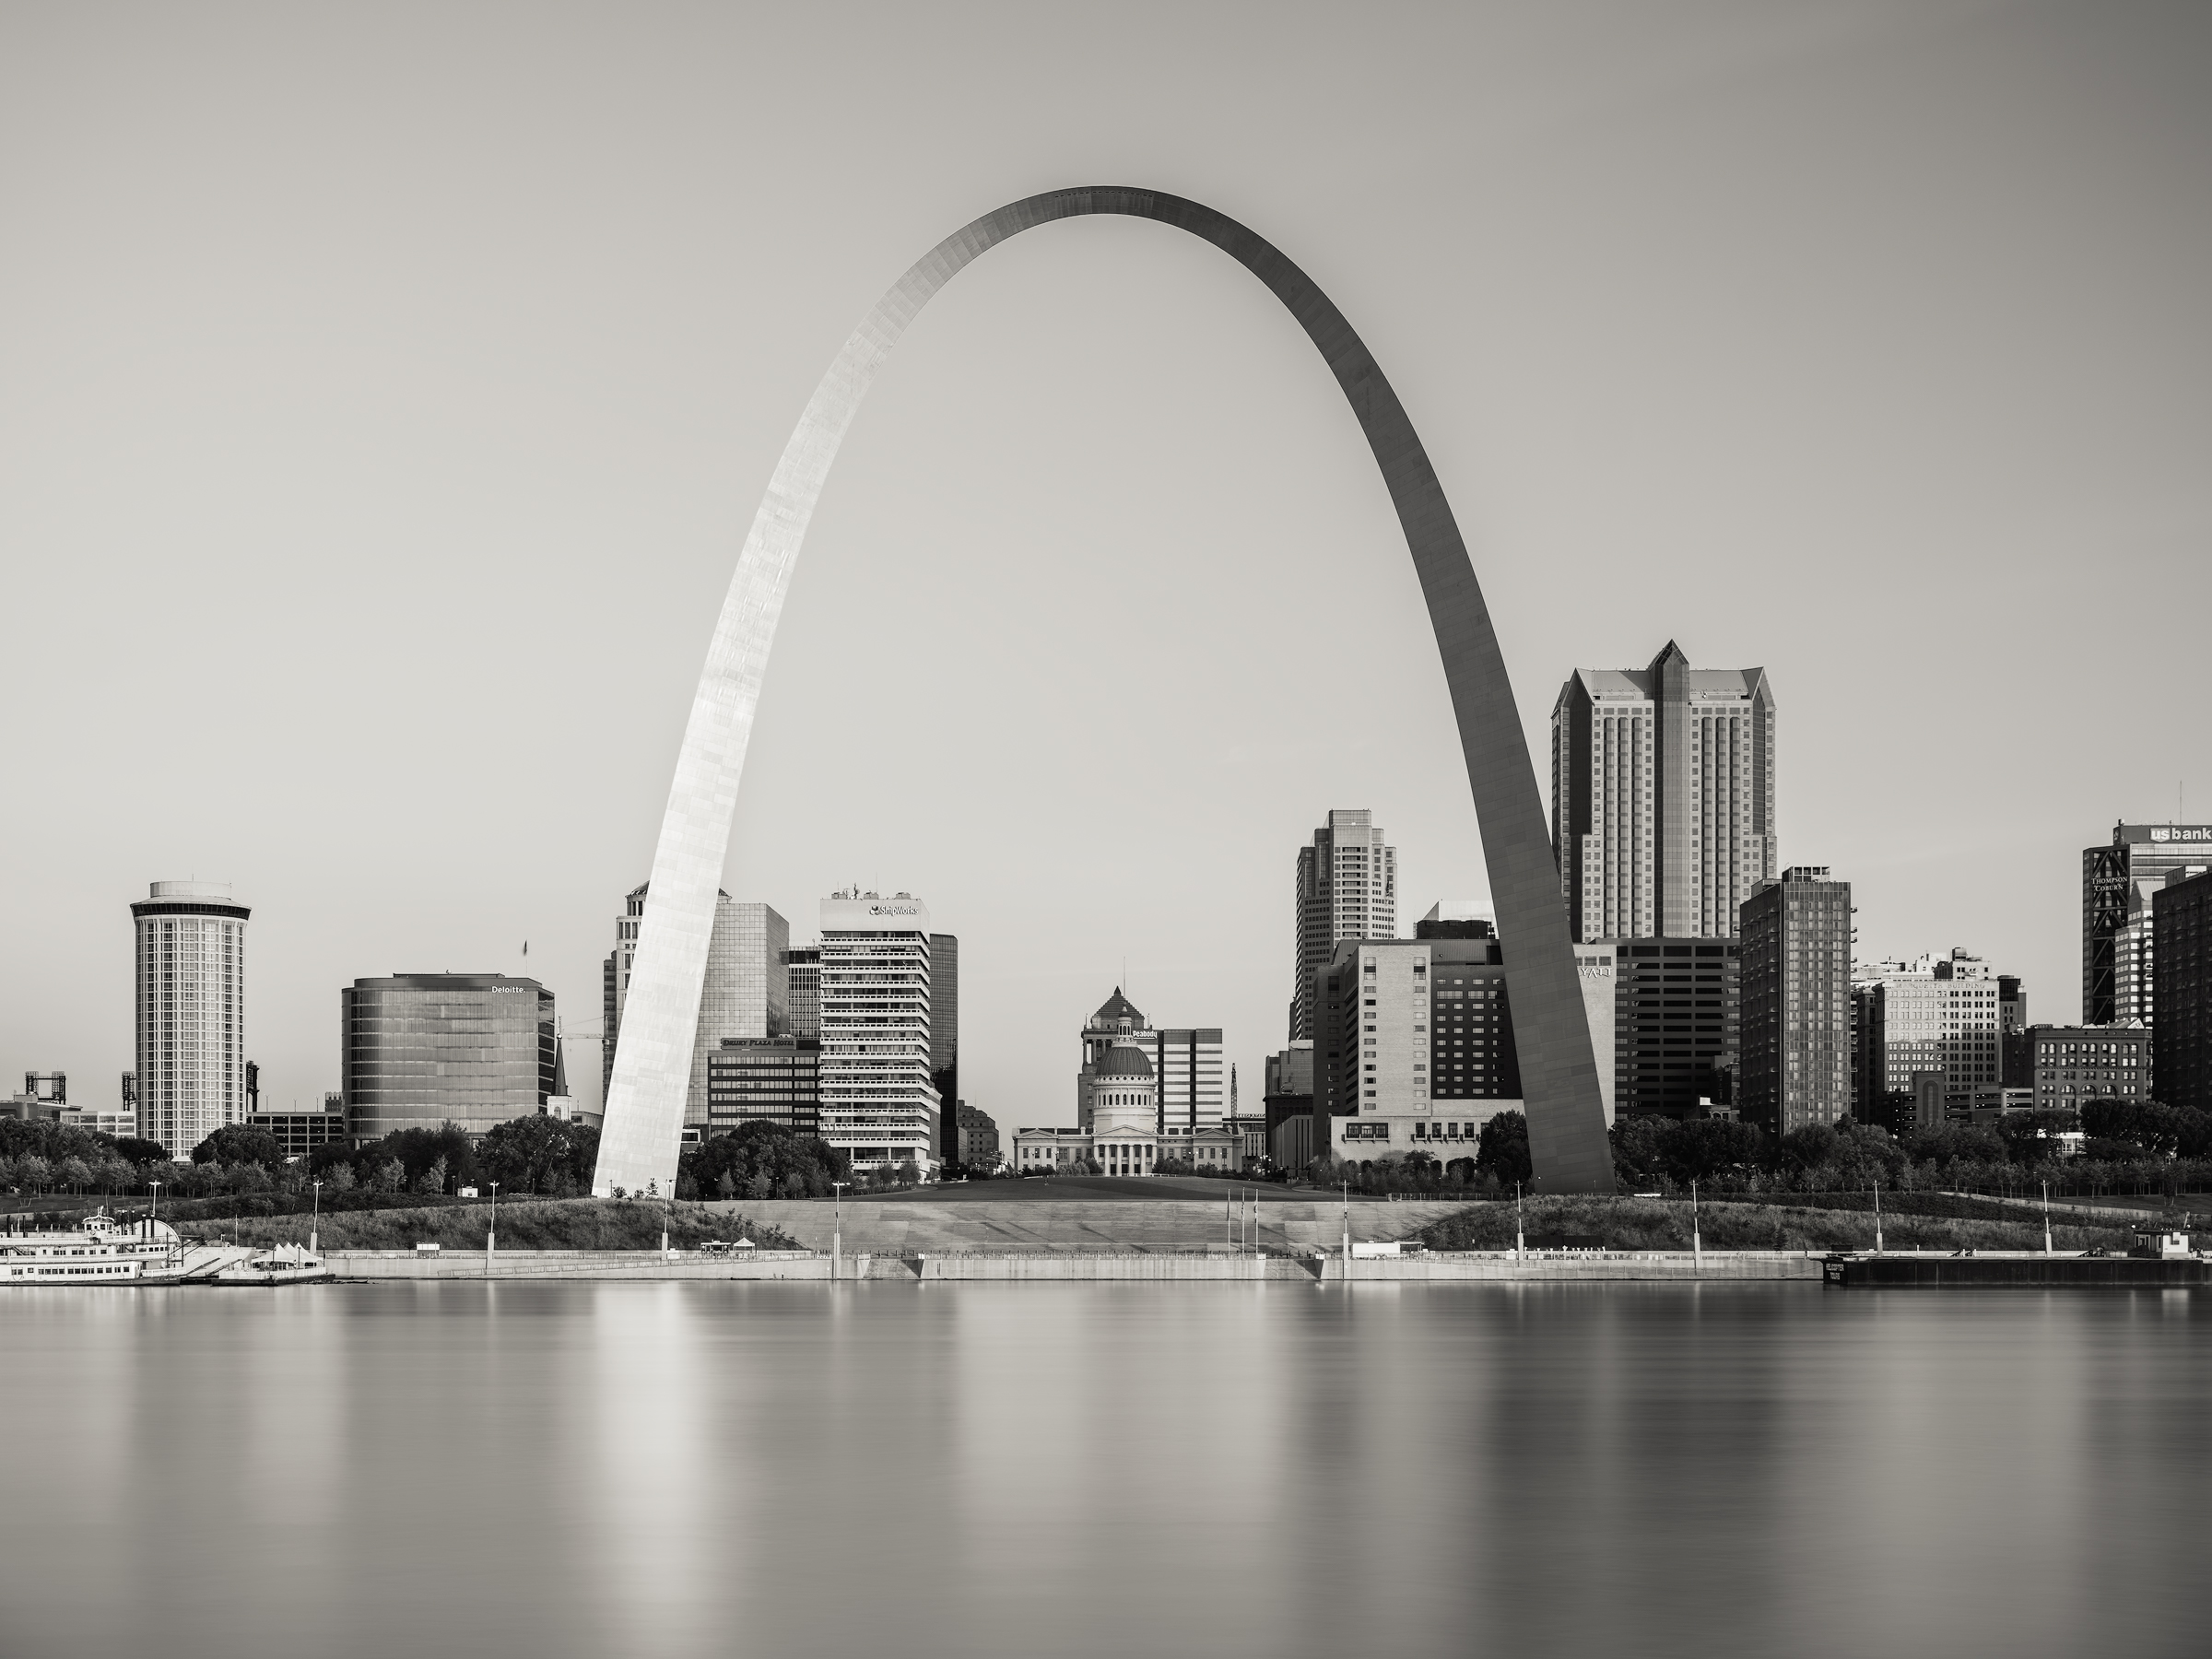 The Arch, St Louis, MO - Fuji GFX50s and a Fujinon GF32-64mm f4 R WR | ISO 100 at f11 for 60 seconds.